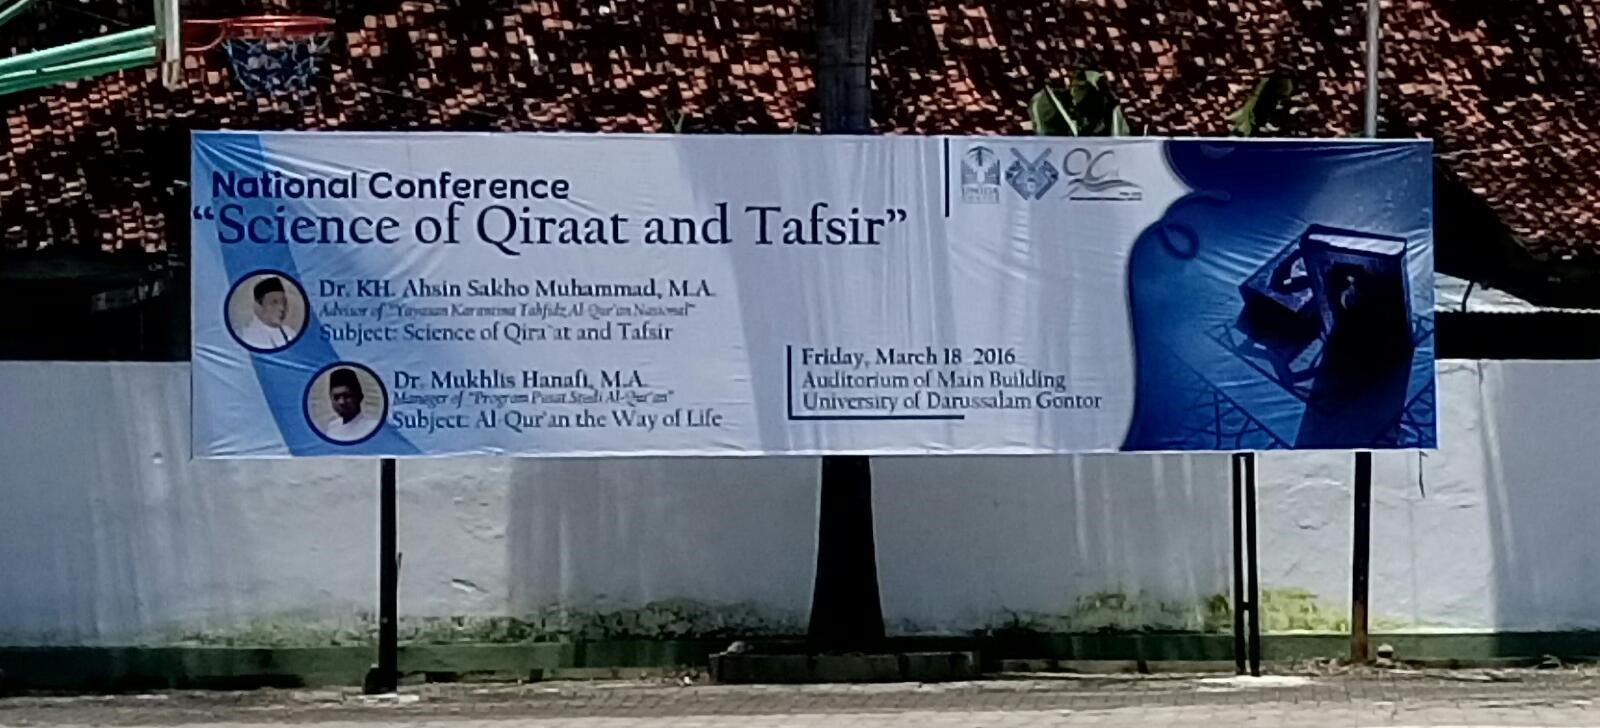 National Conference Science Of Qiraat and Tafseer